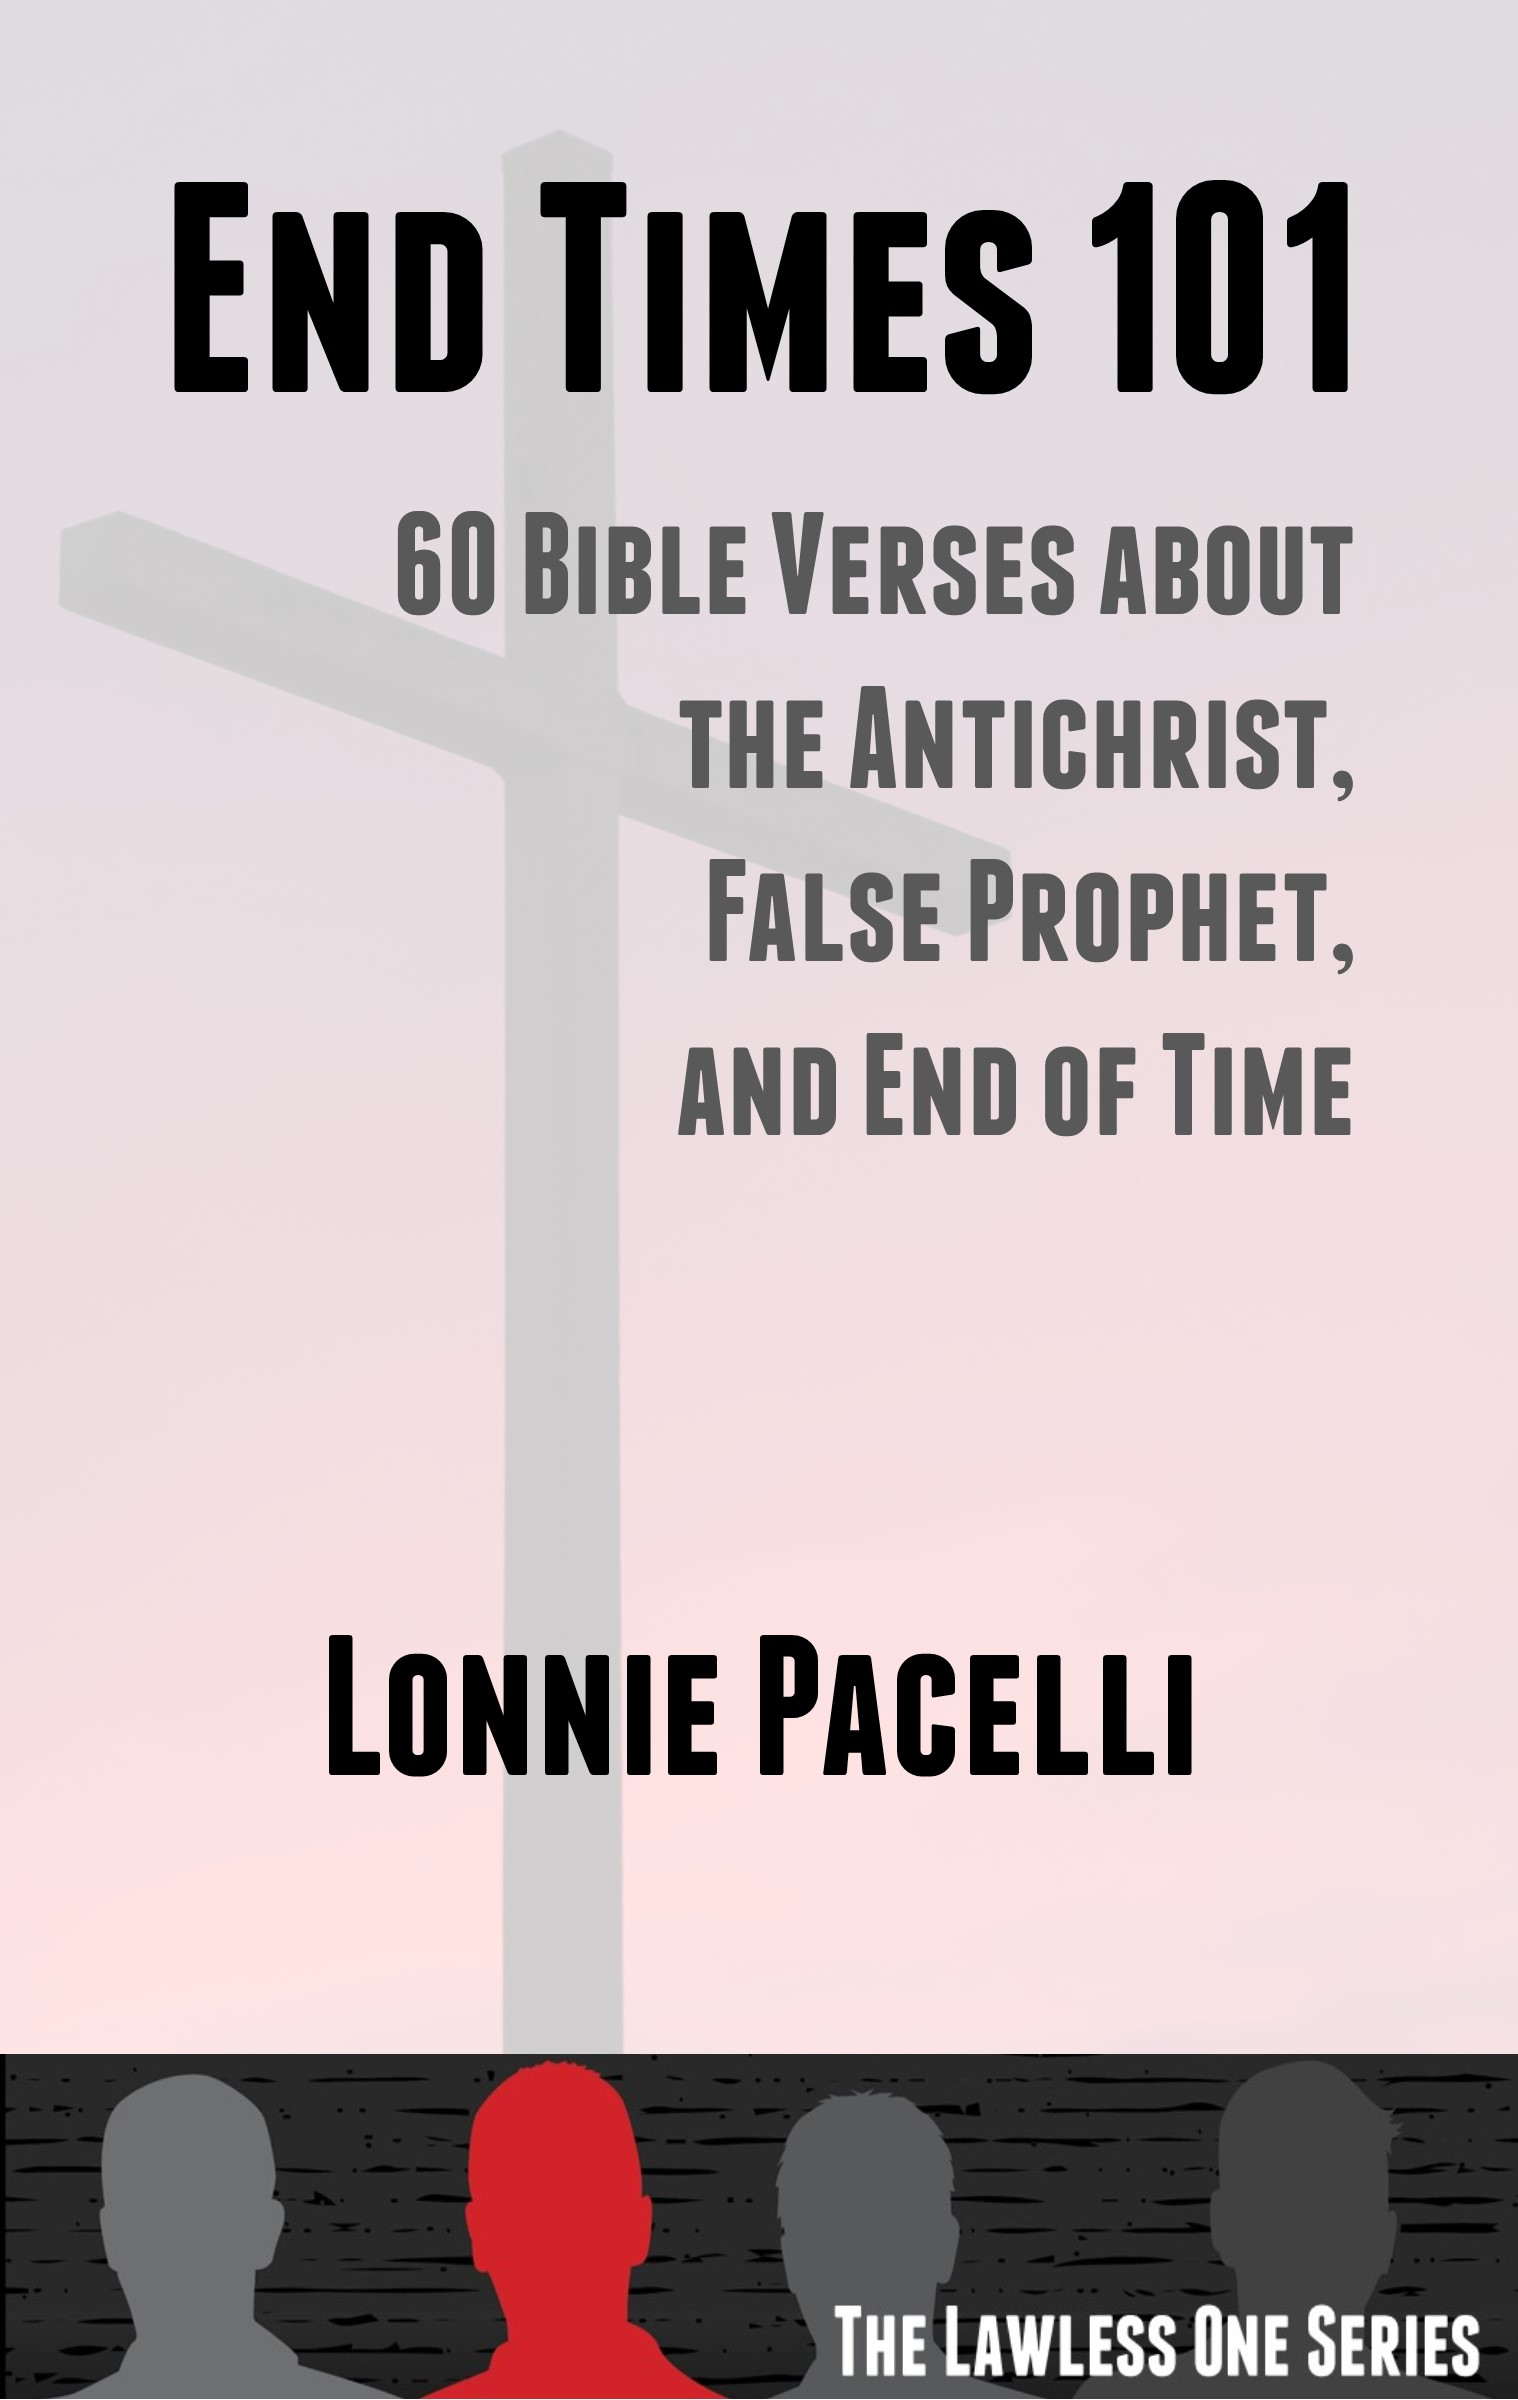 End Times 101: 60 Bible Verses about the Antichrist, False Prophet, and End of Time